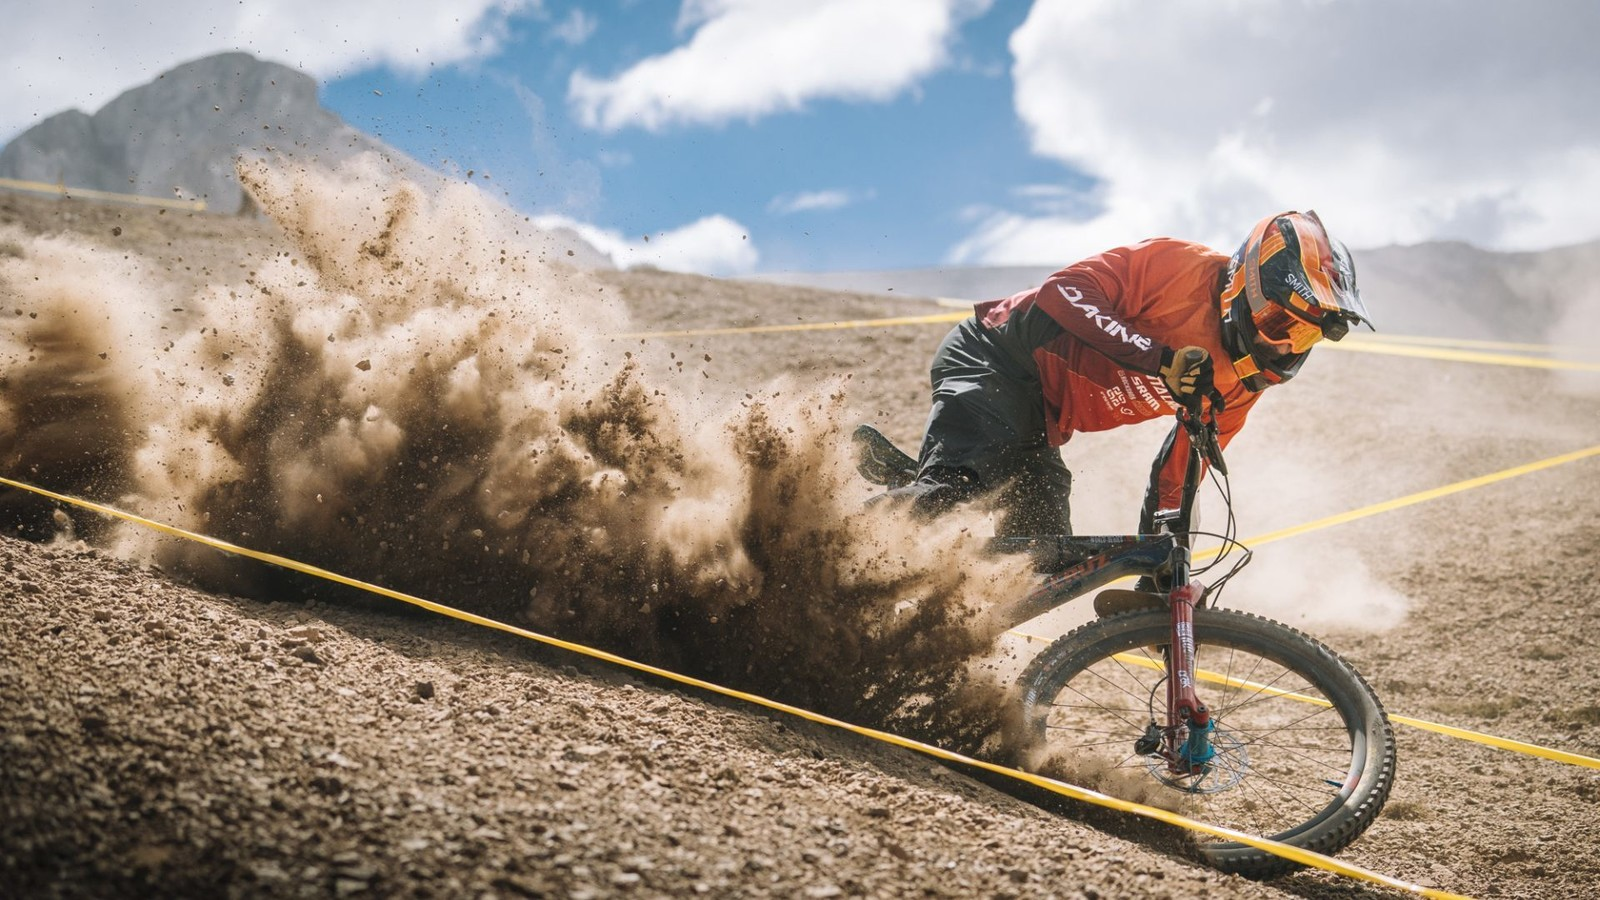 Discovery, Inc invests in the EWS to Revolutionize Enduro Racing Coverage